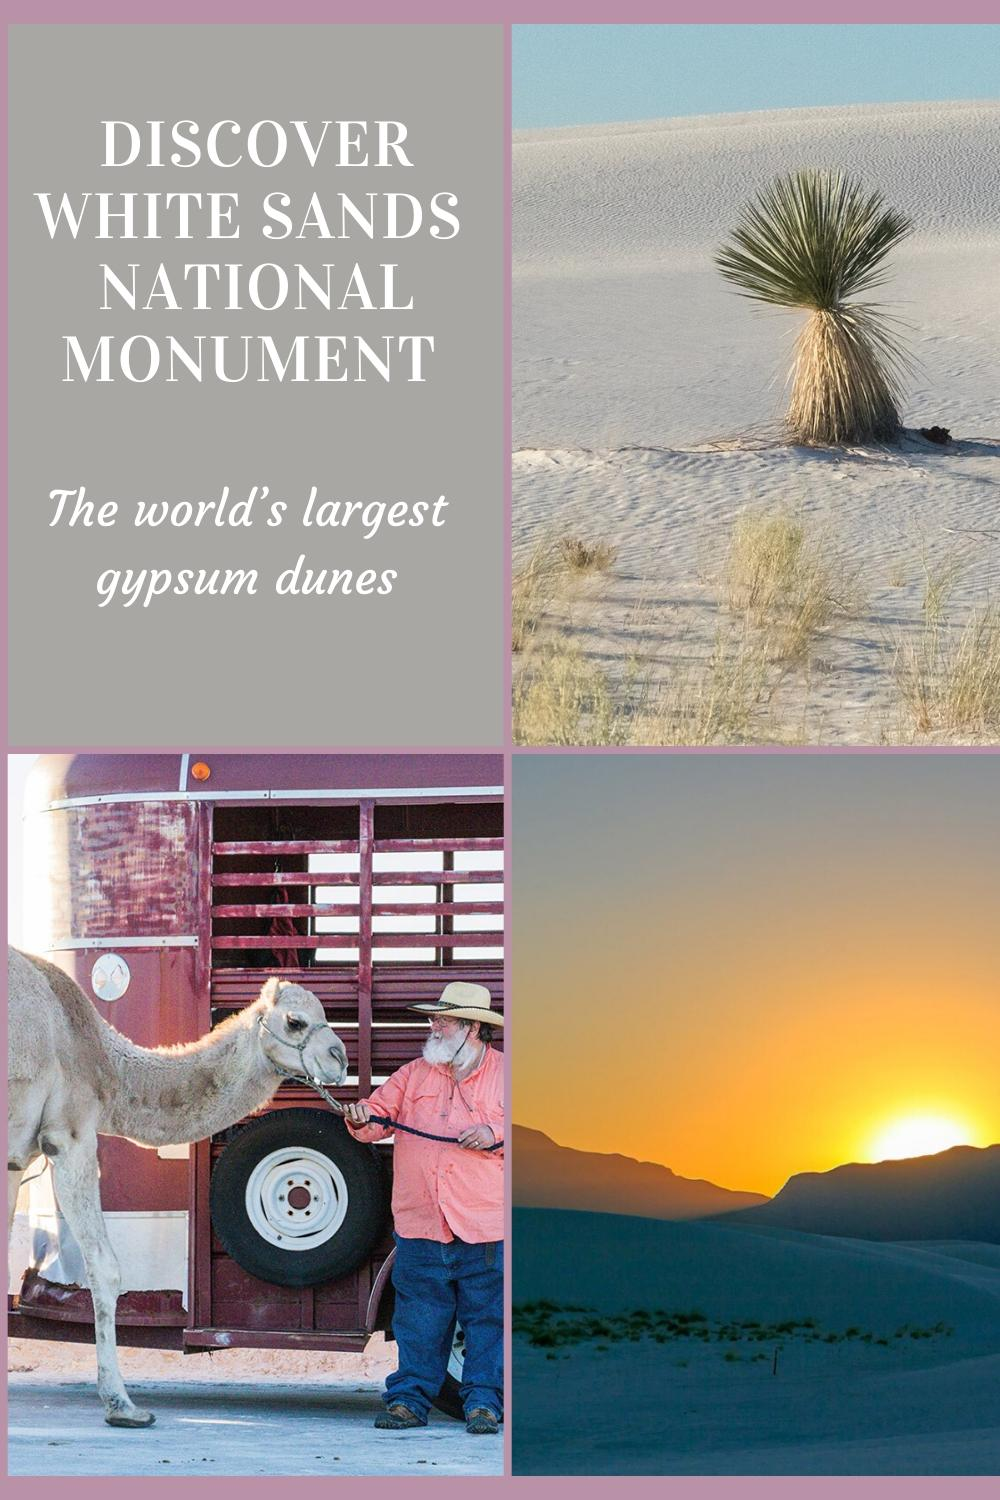 Interesting facts about White Sands National Monument, the world's largest gypsum dunes